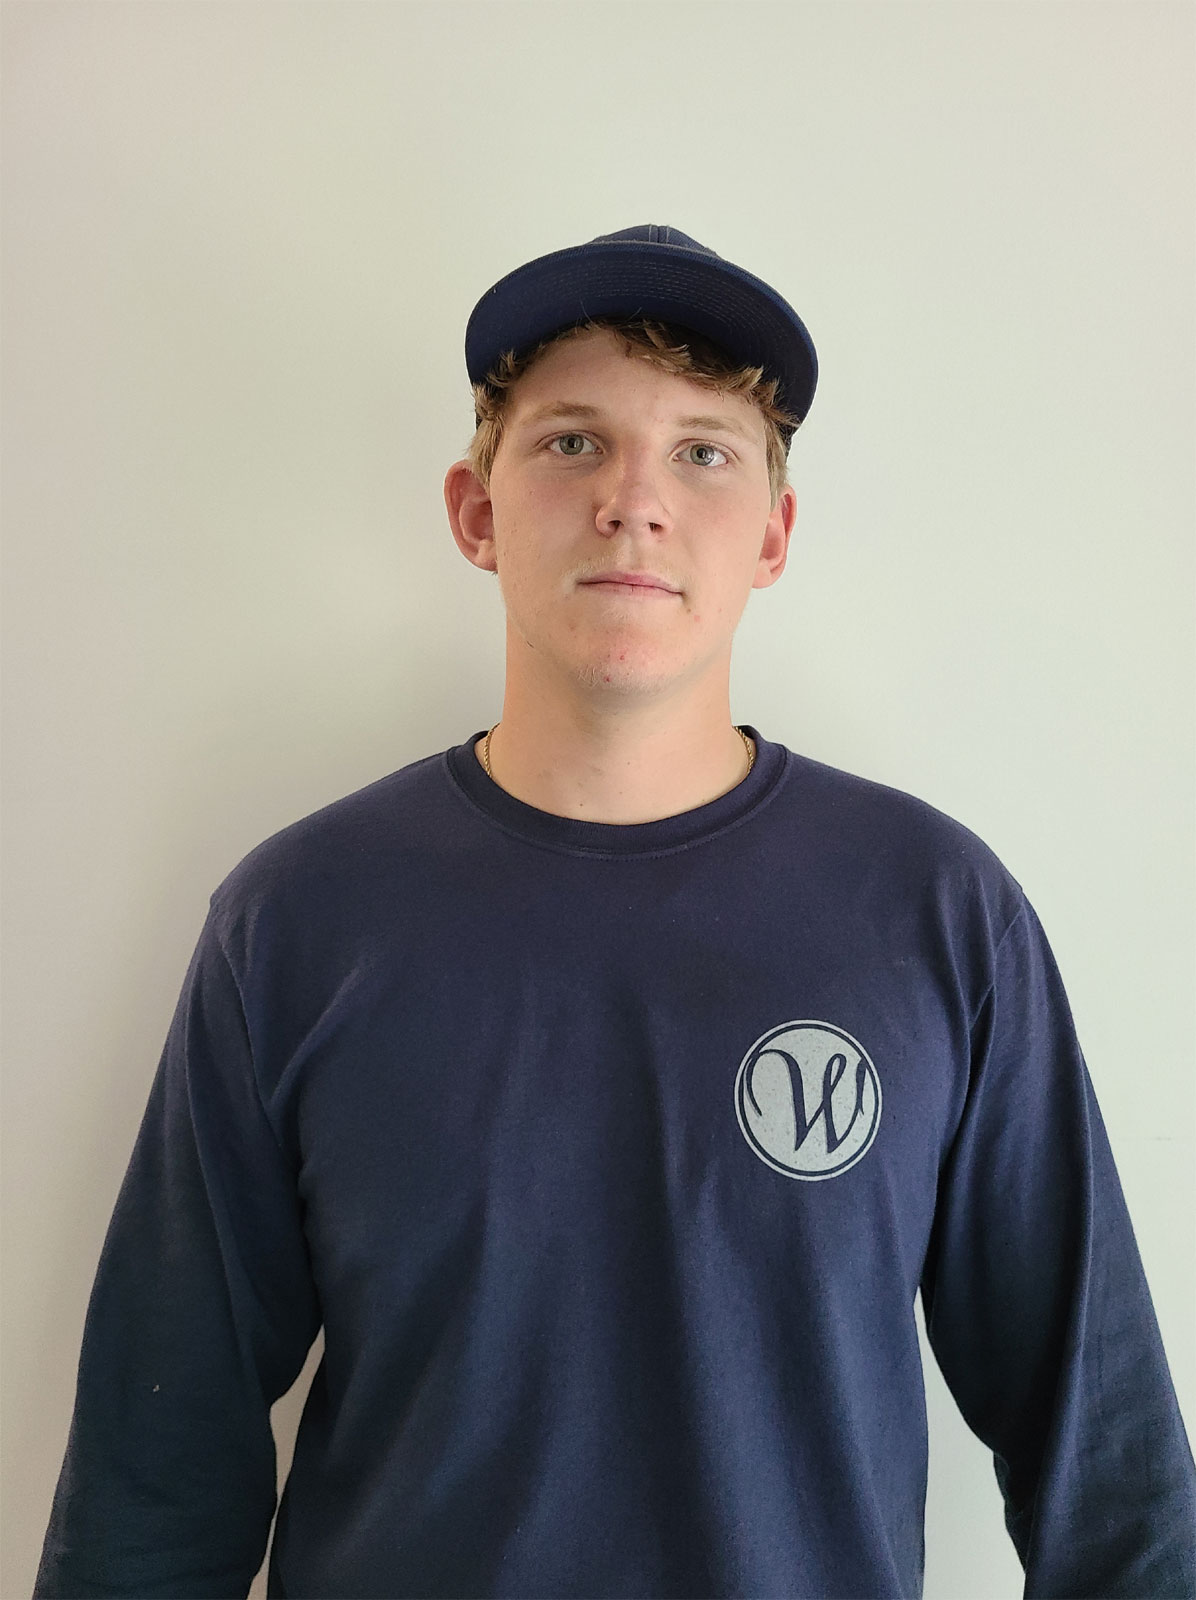 Jacob Kemp - Seasonal Worker - Williamsburg Heating & Air Conditioning